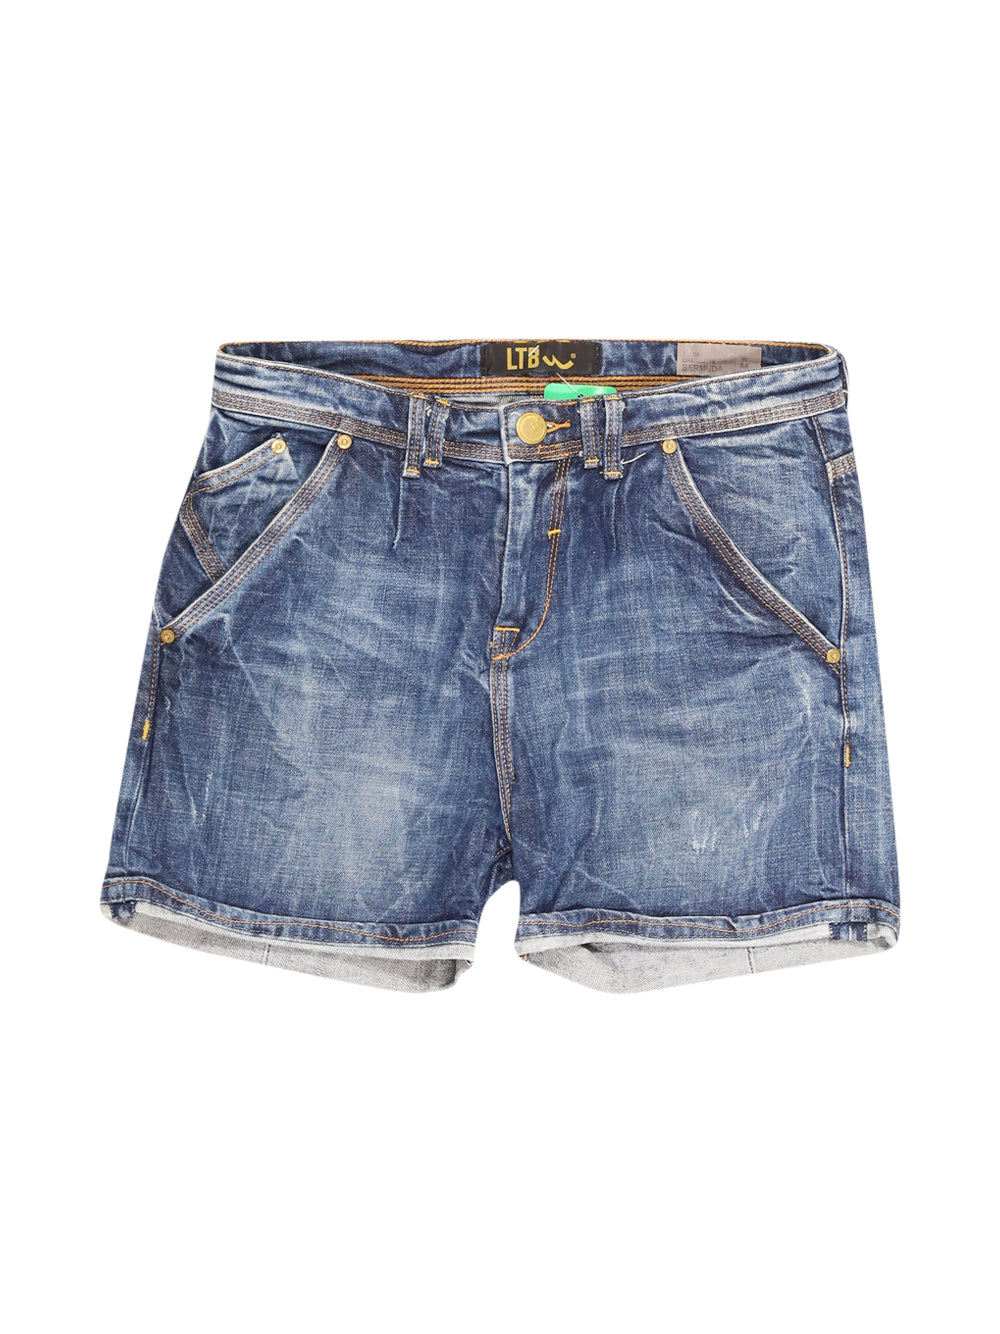 Front photo of Preloved Ltb Blue Woman's shorts - size 10/M